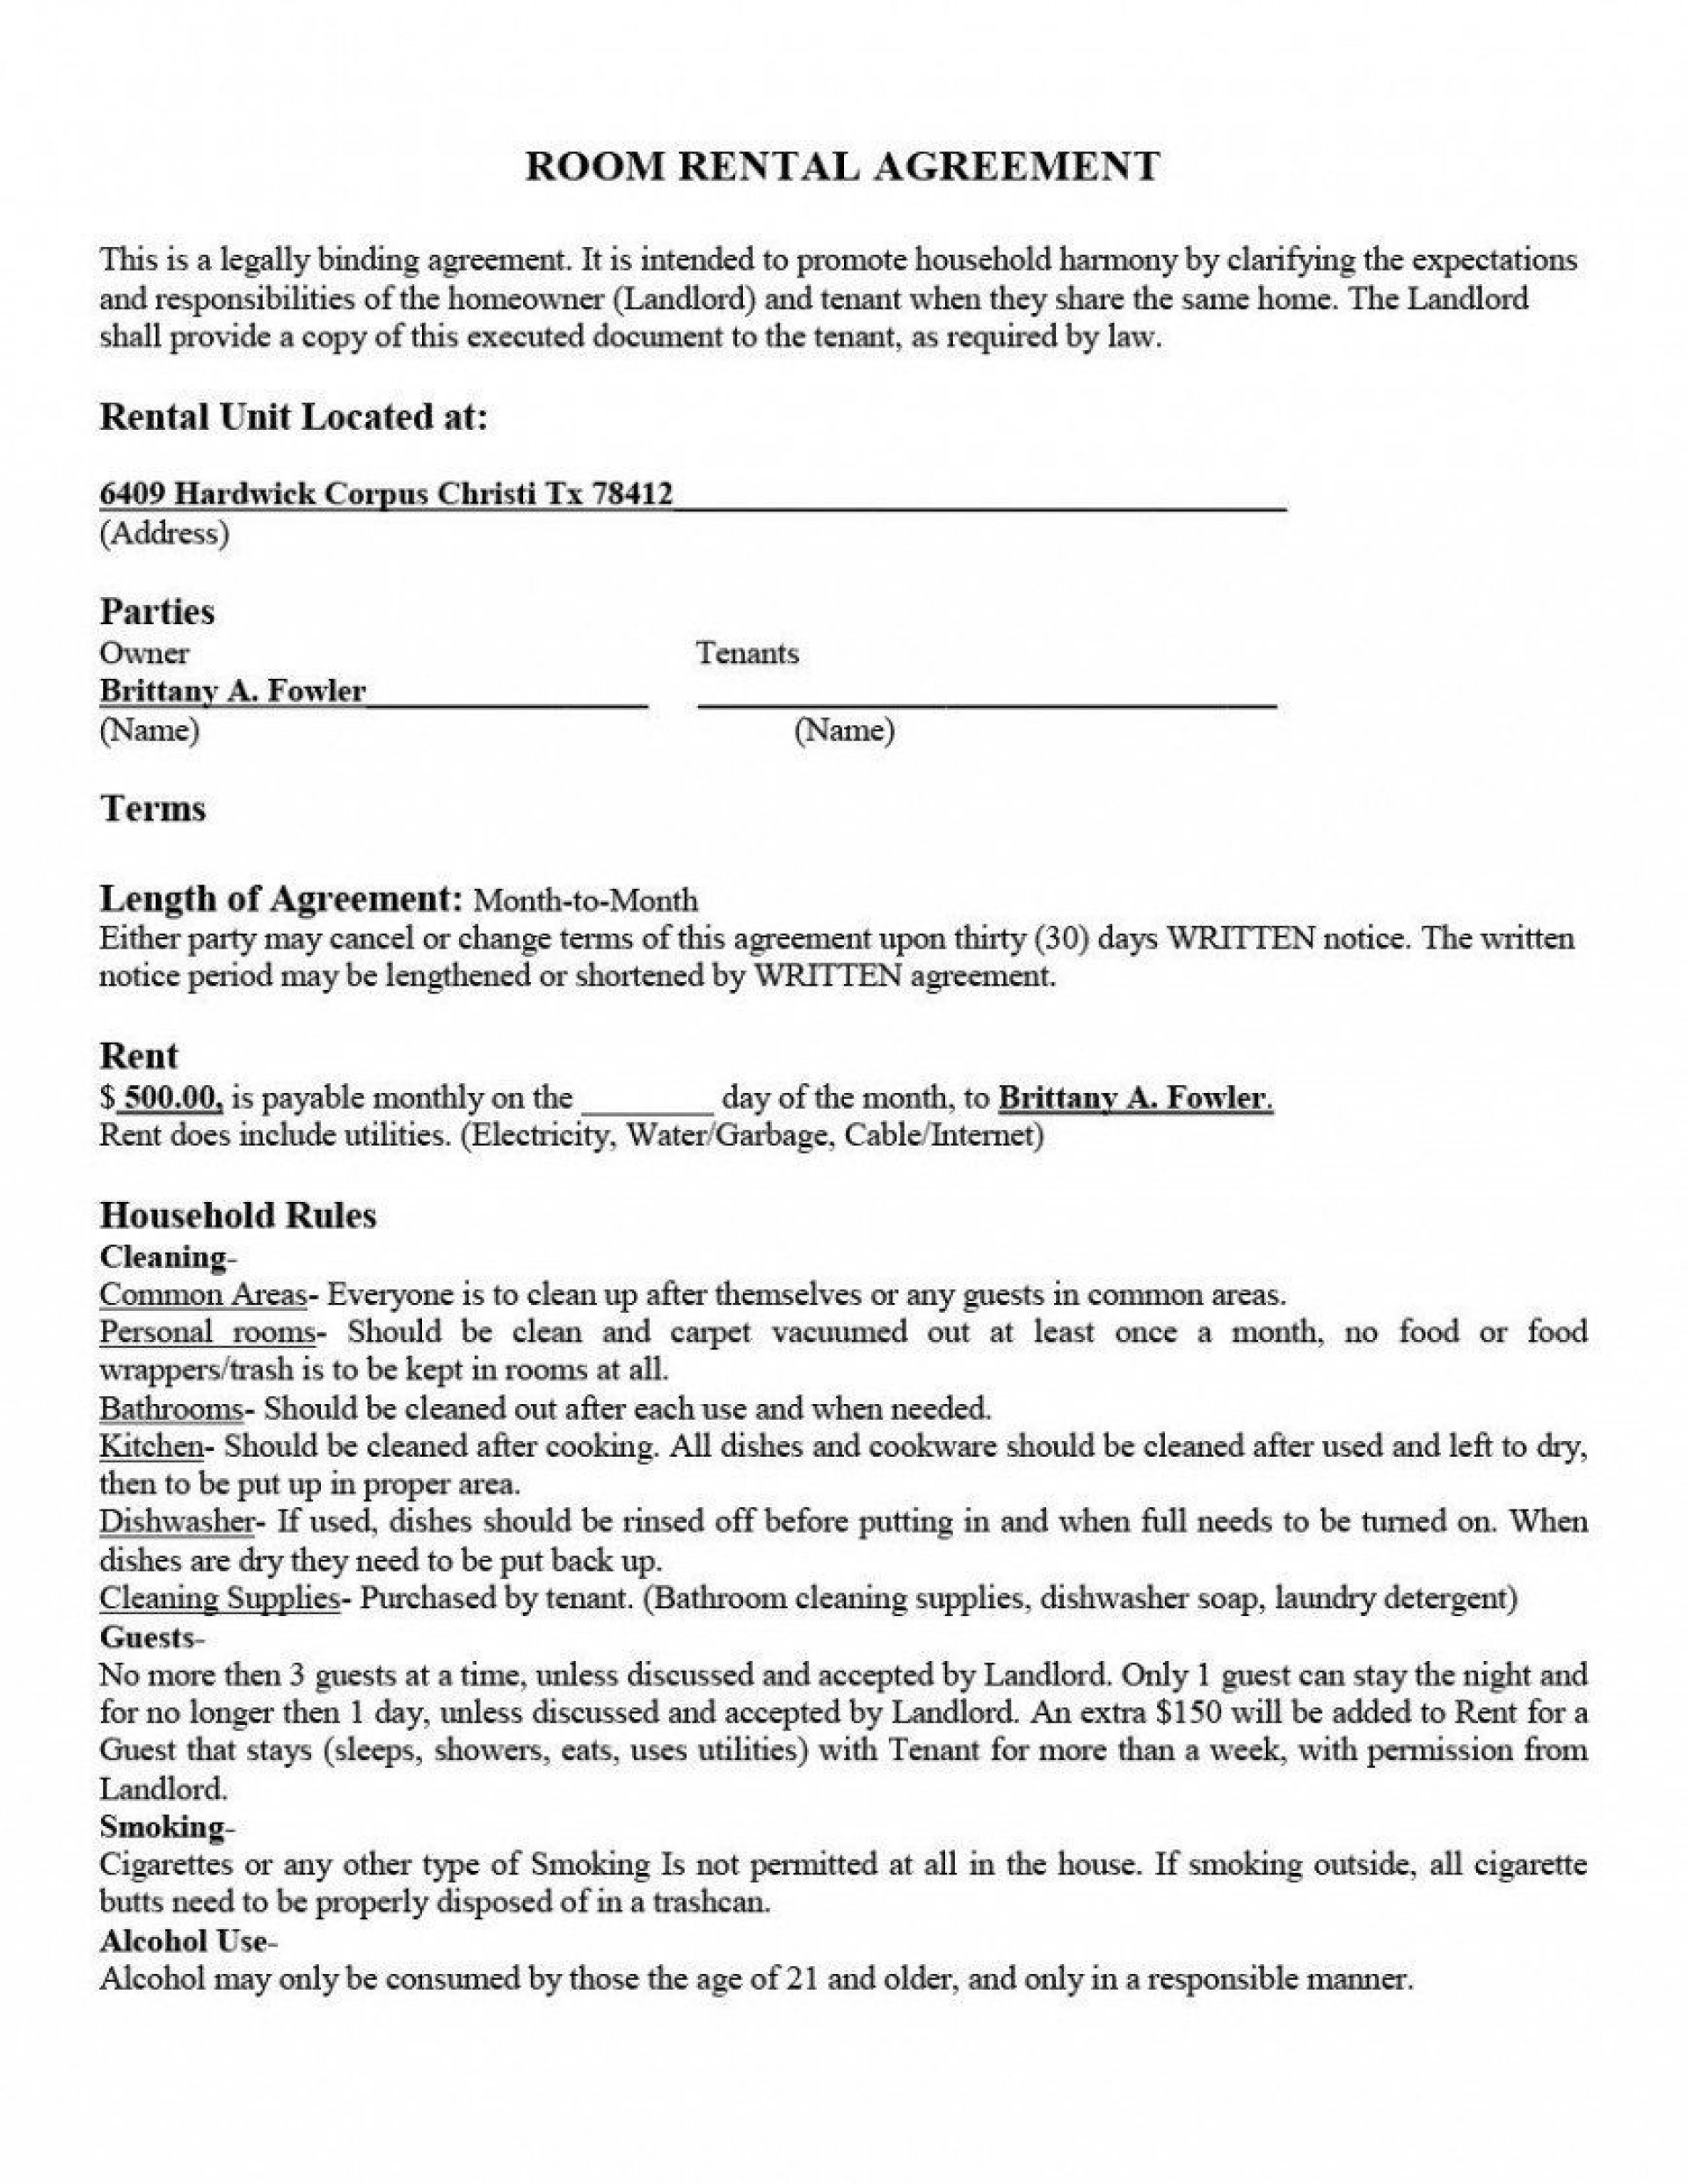 001 Unusual Housing Rental Agreement Template Free Highest Clarity 1920